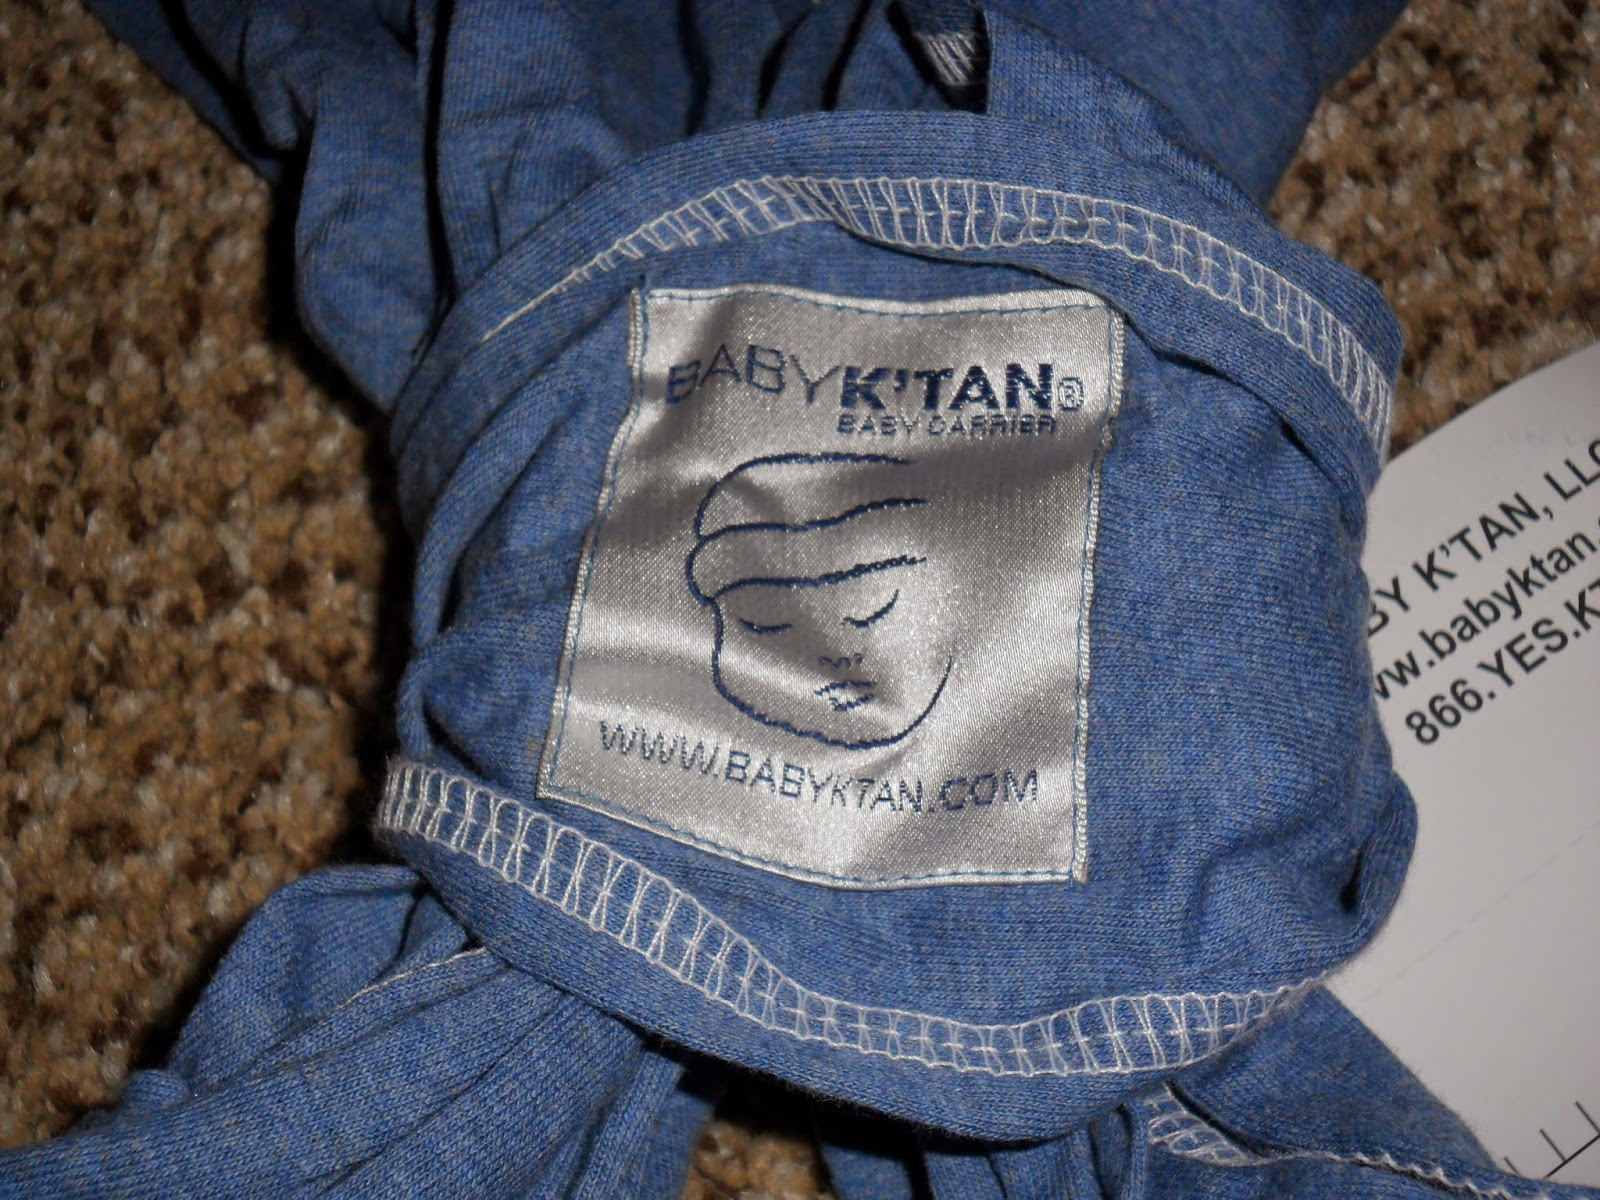 How to wear your baby with Baby K'tan. Review  (Blu me away or Pink of me Event)